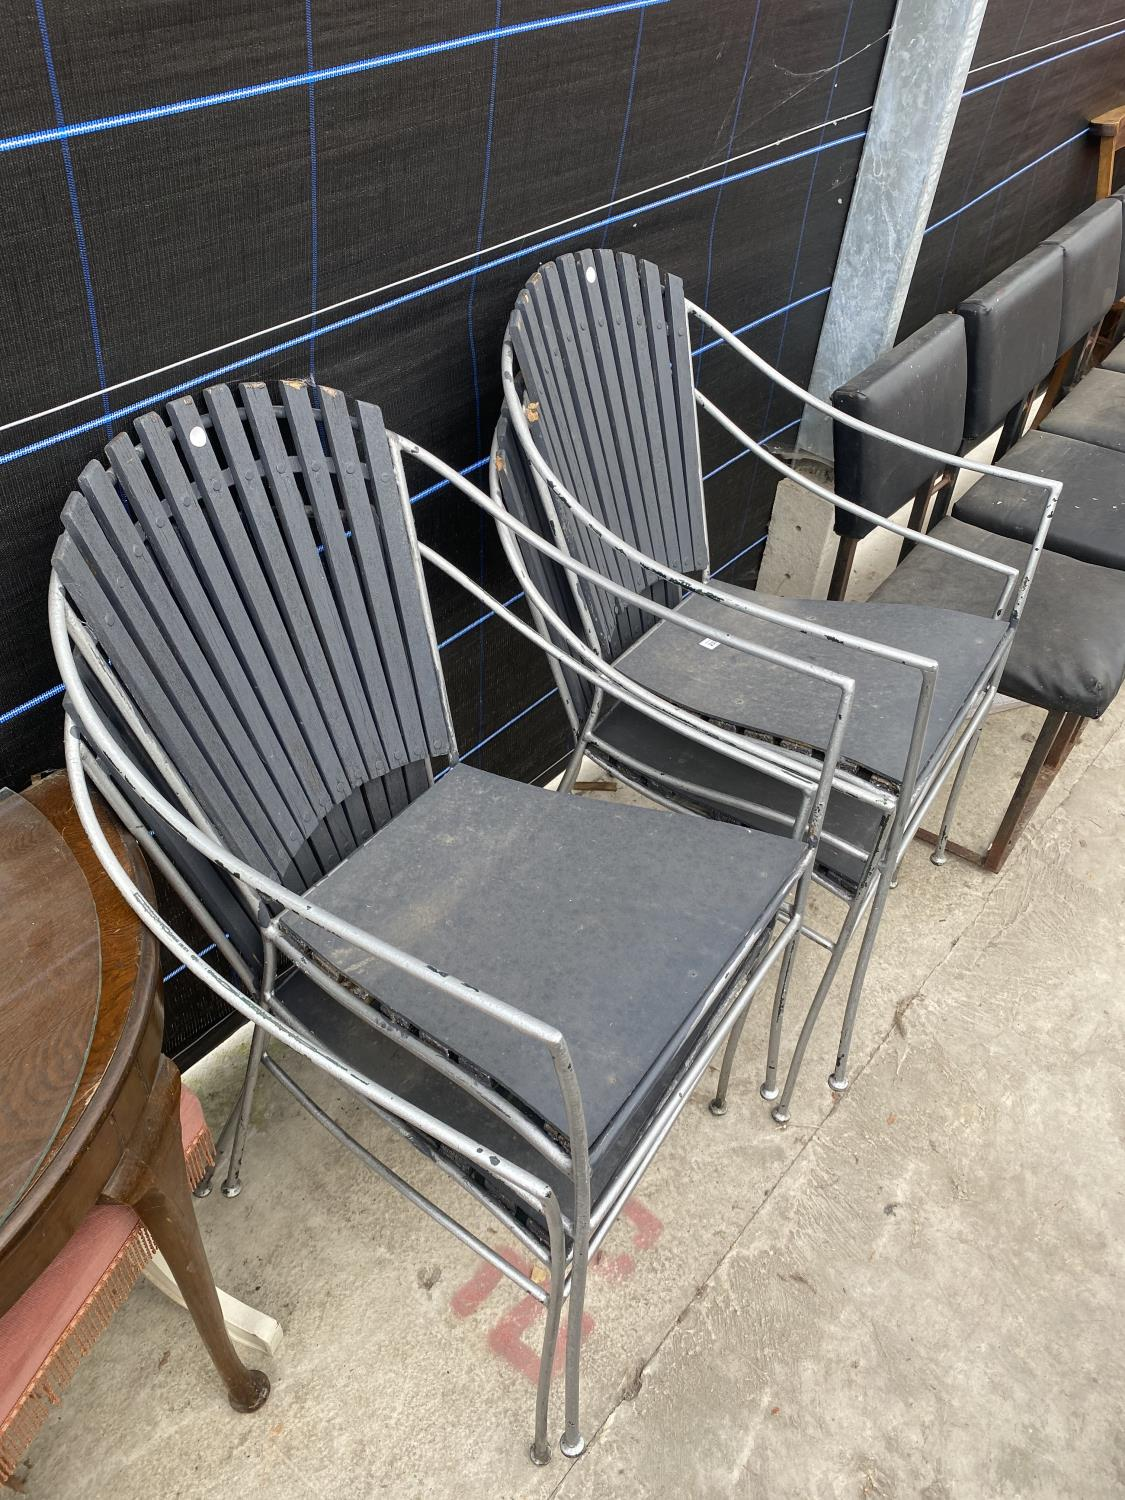 FOUR METAL FRAMED PATIO CHAIRS - Image 4 of 4